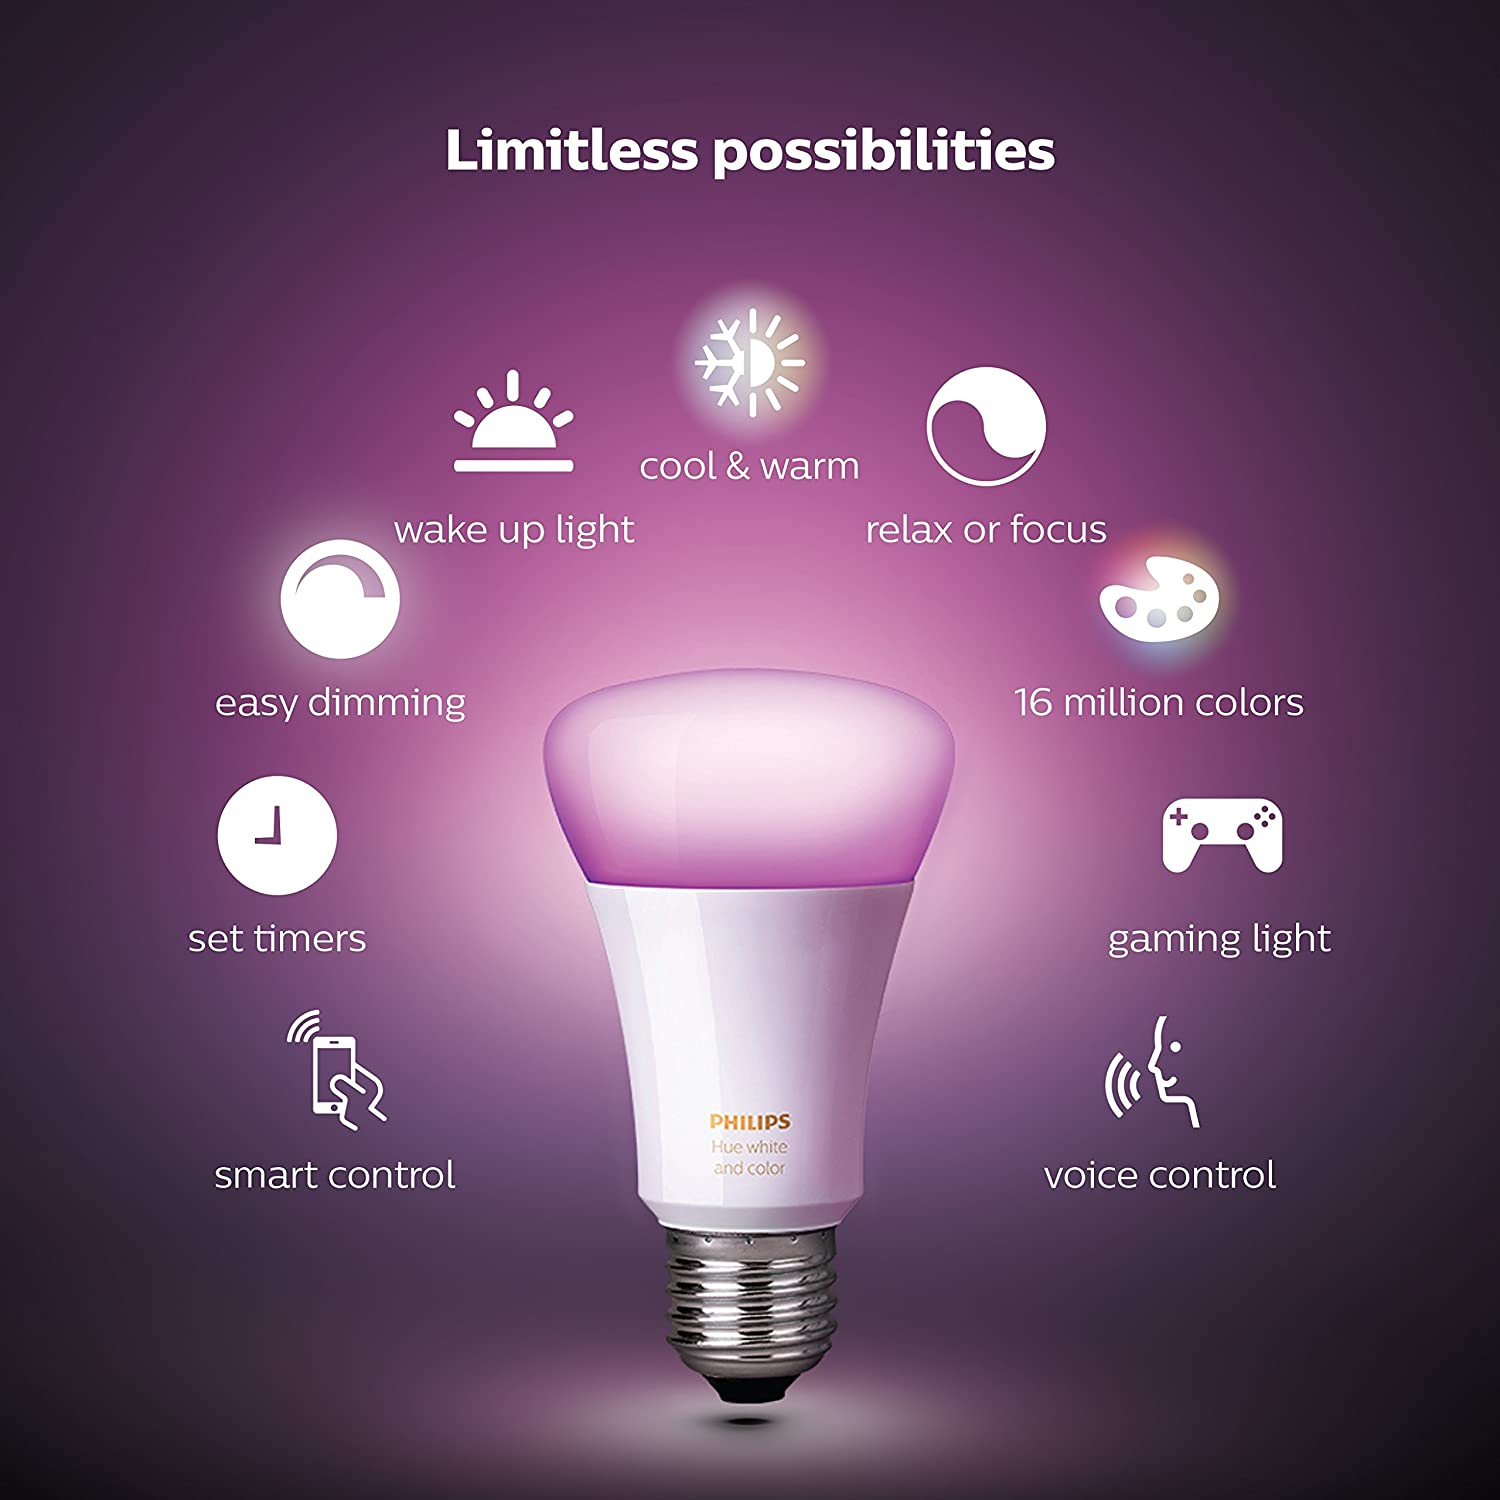 Philips Hue White And Color Ambiance A19 60W Equivalent LED Smart Light Bulb Starter Kit, 2 A19 Bulbs And 1 Bridge, Works With Alexa, Apple HomeKit And Google Assistant